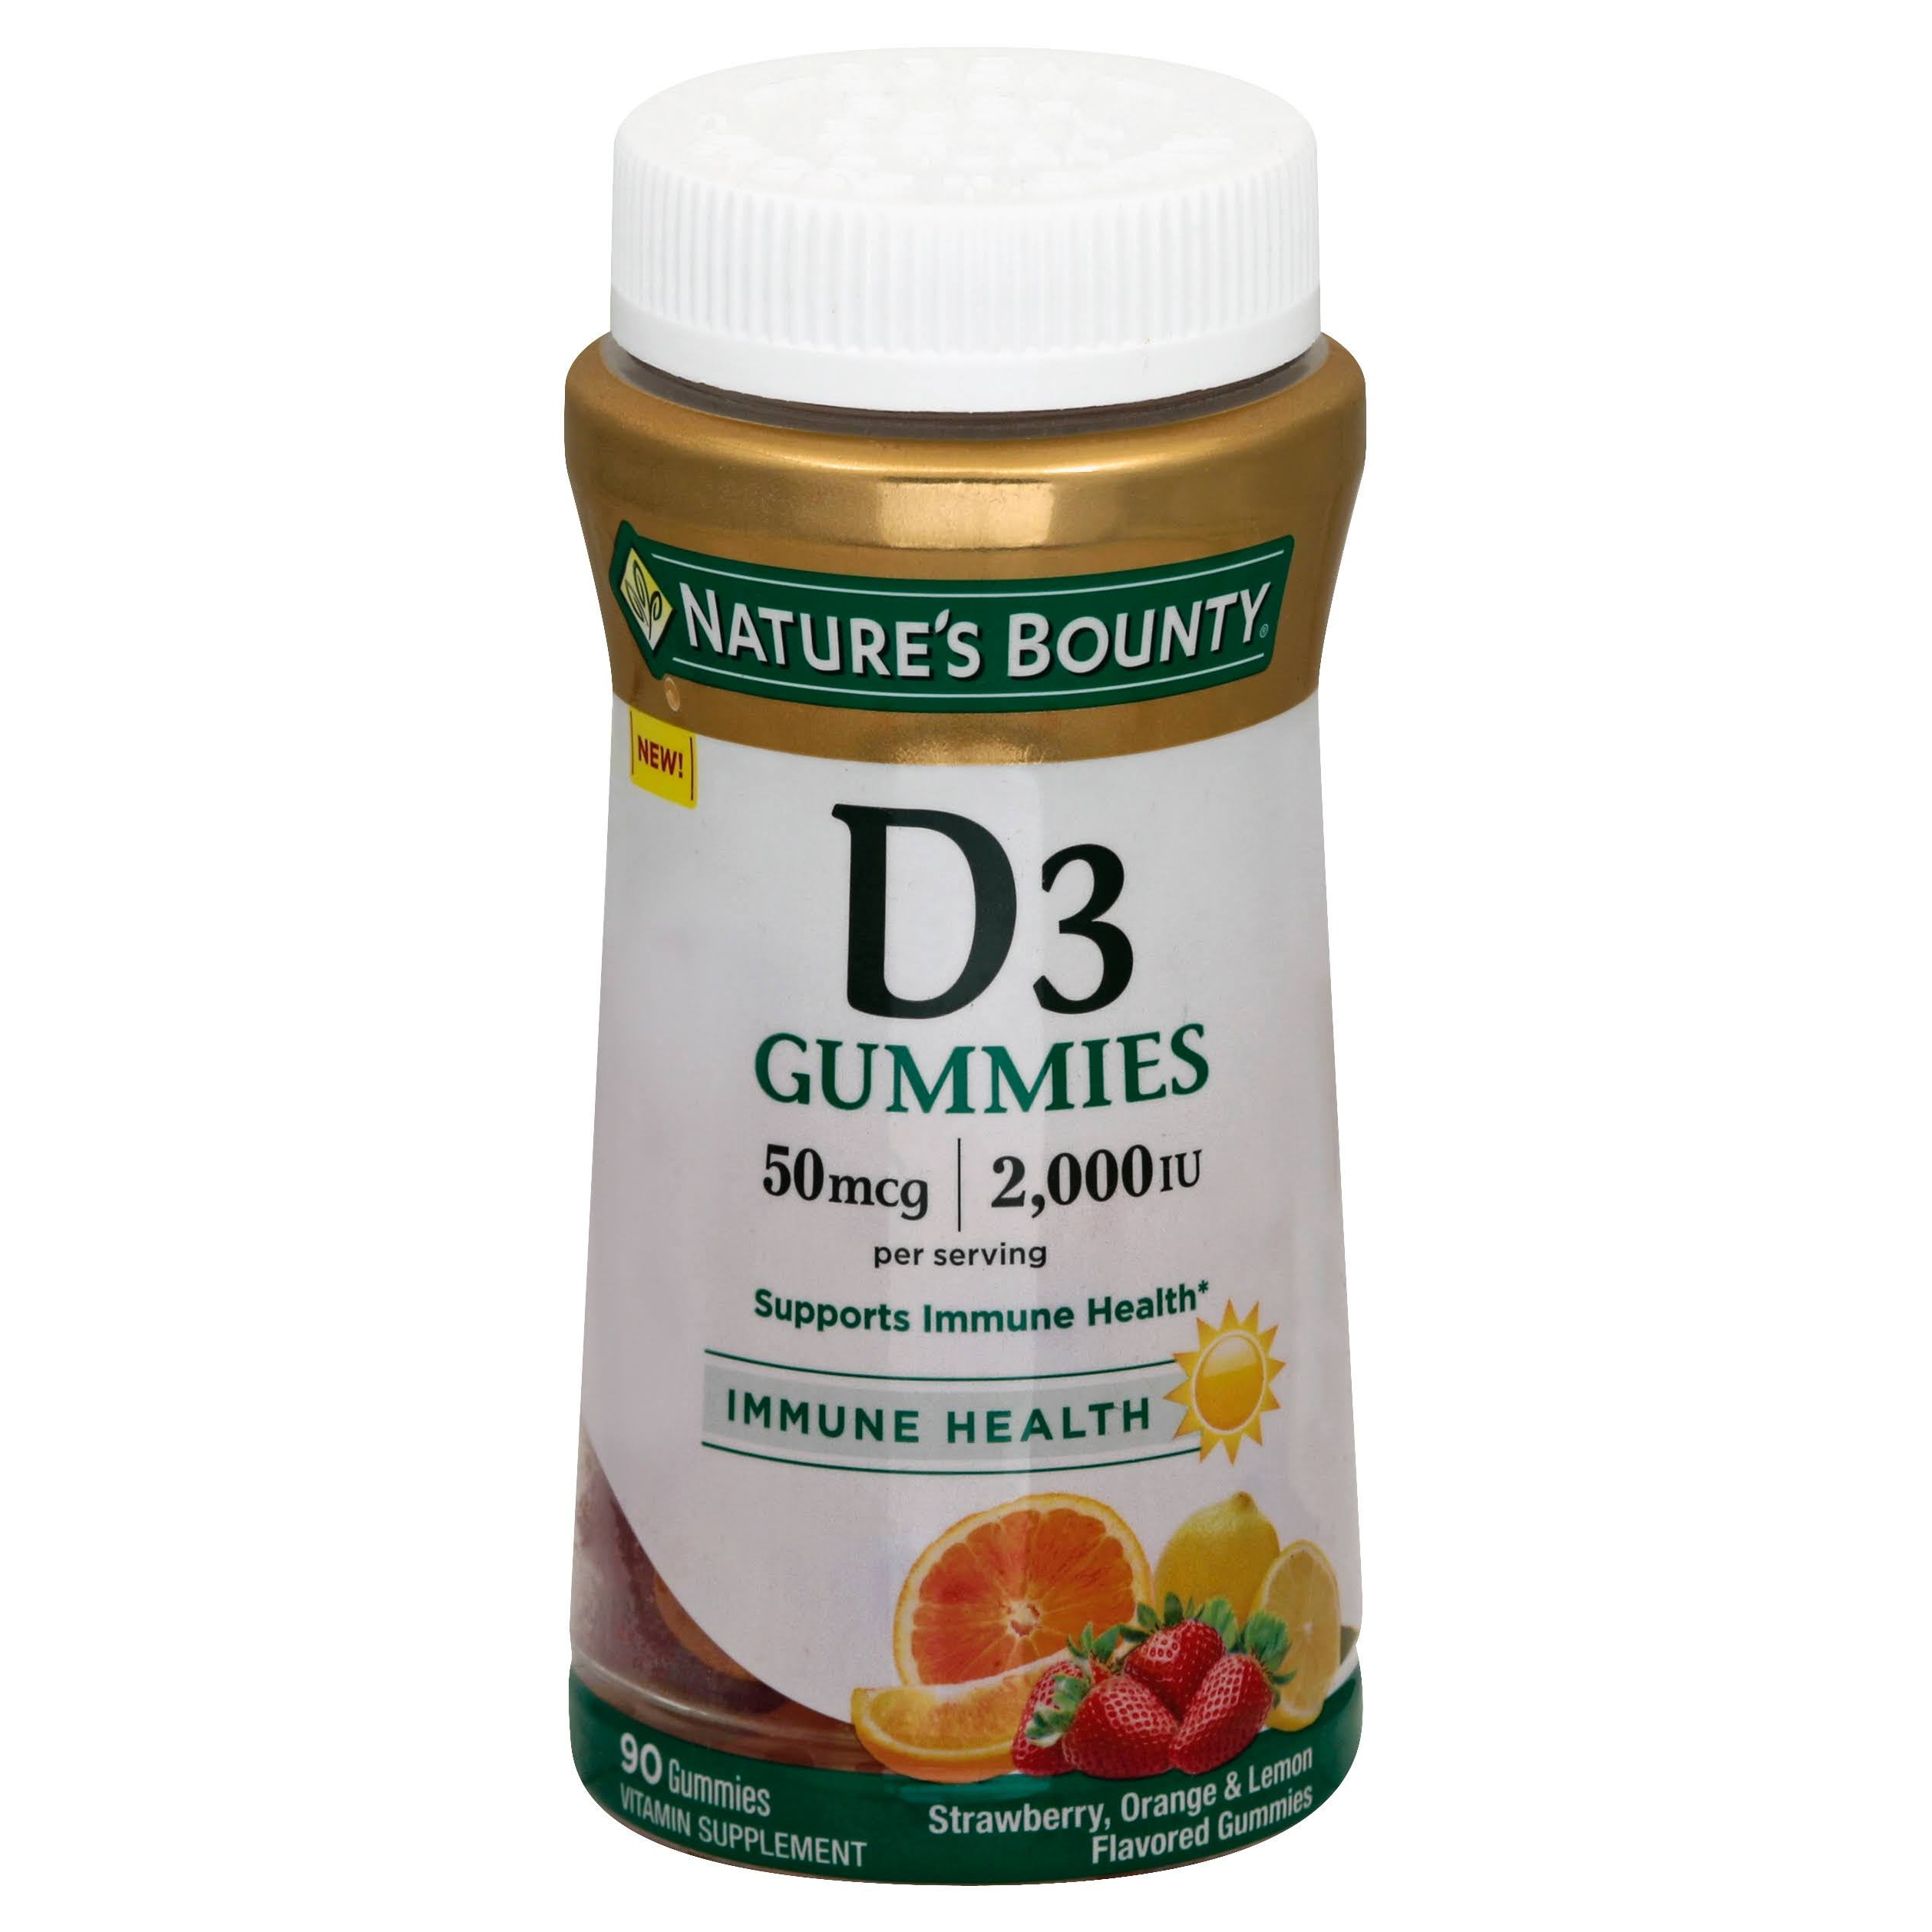 Natures Bounty Vitamin D3, 2,000 IU, Gummies, Strawberry, Orange & Lemon Flavored - 90 gummies